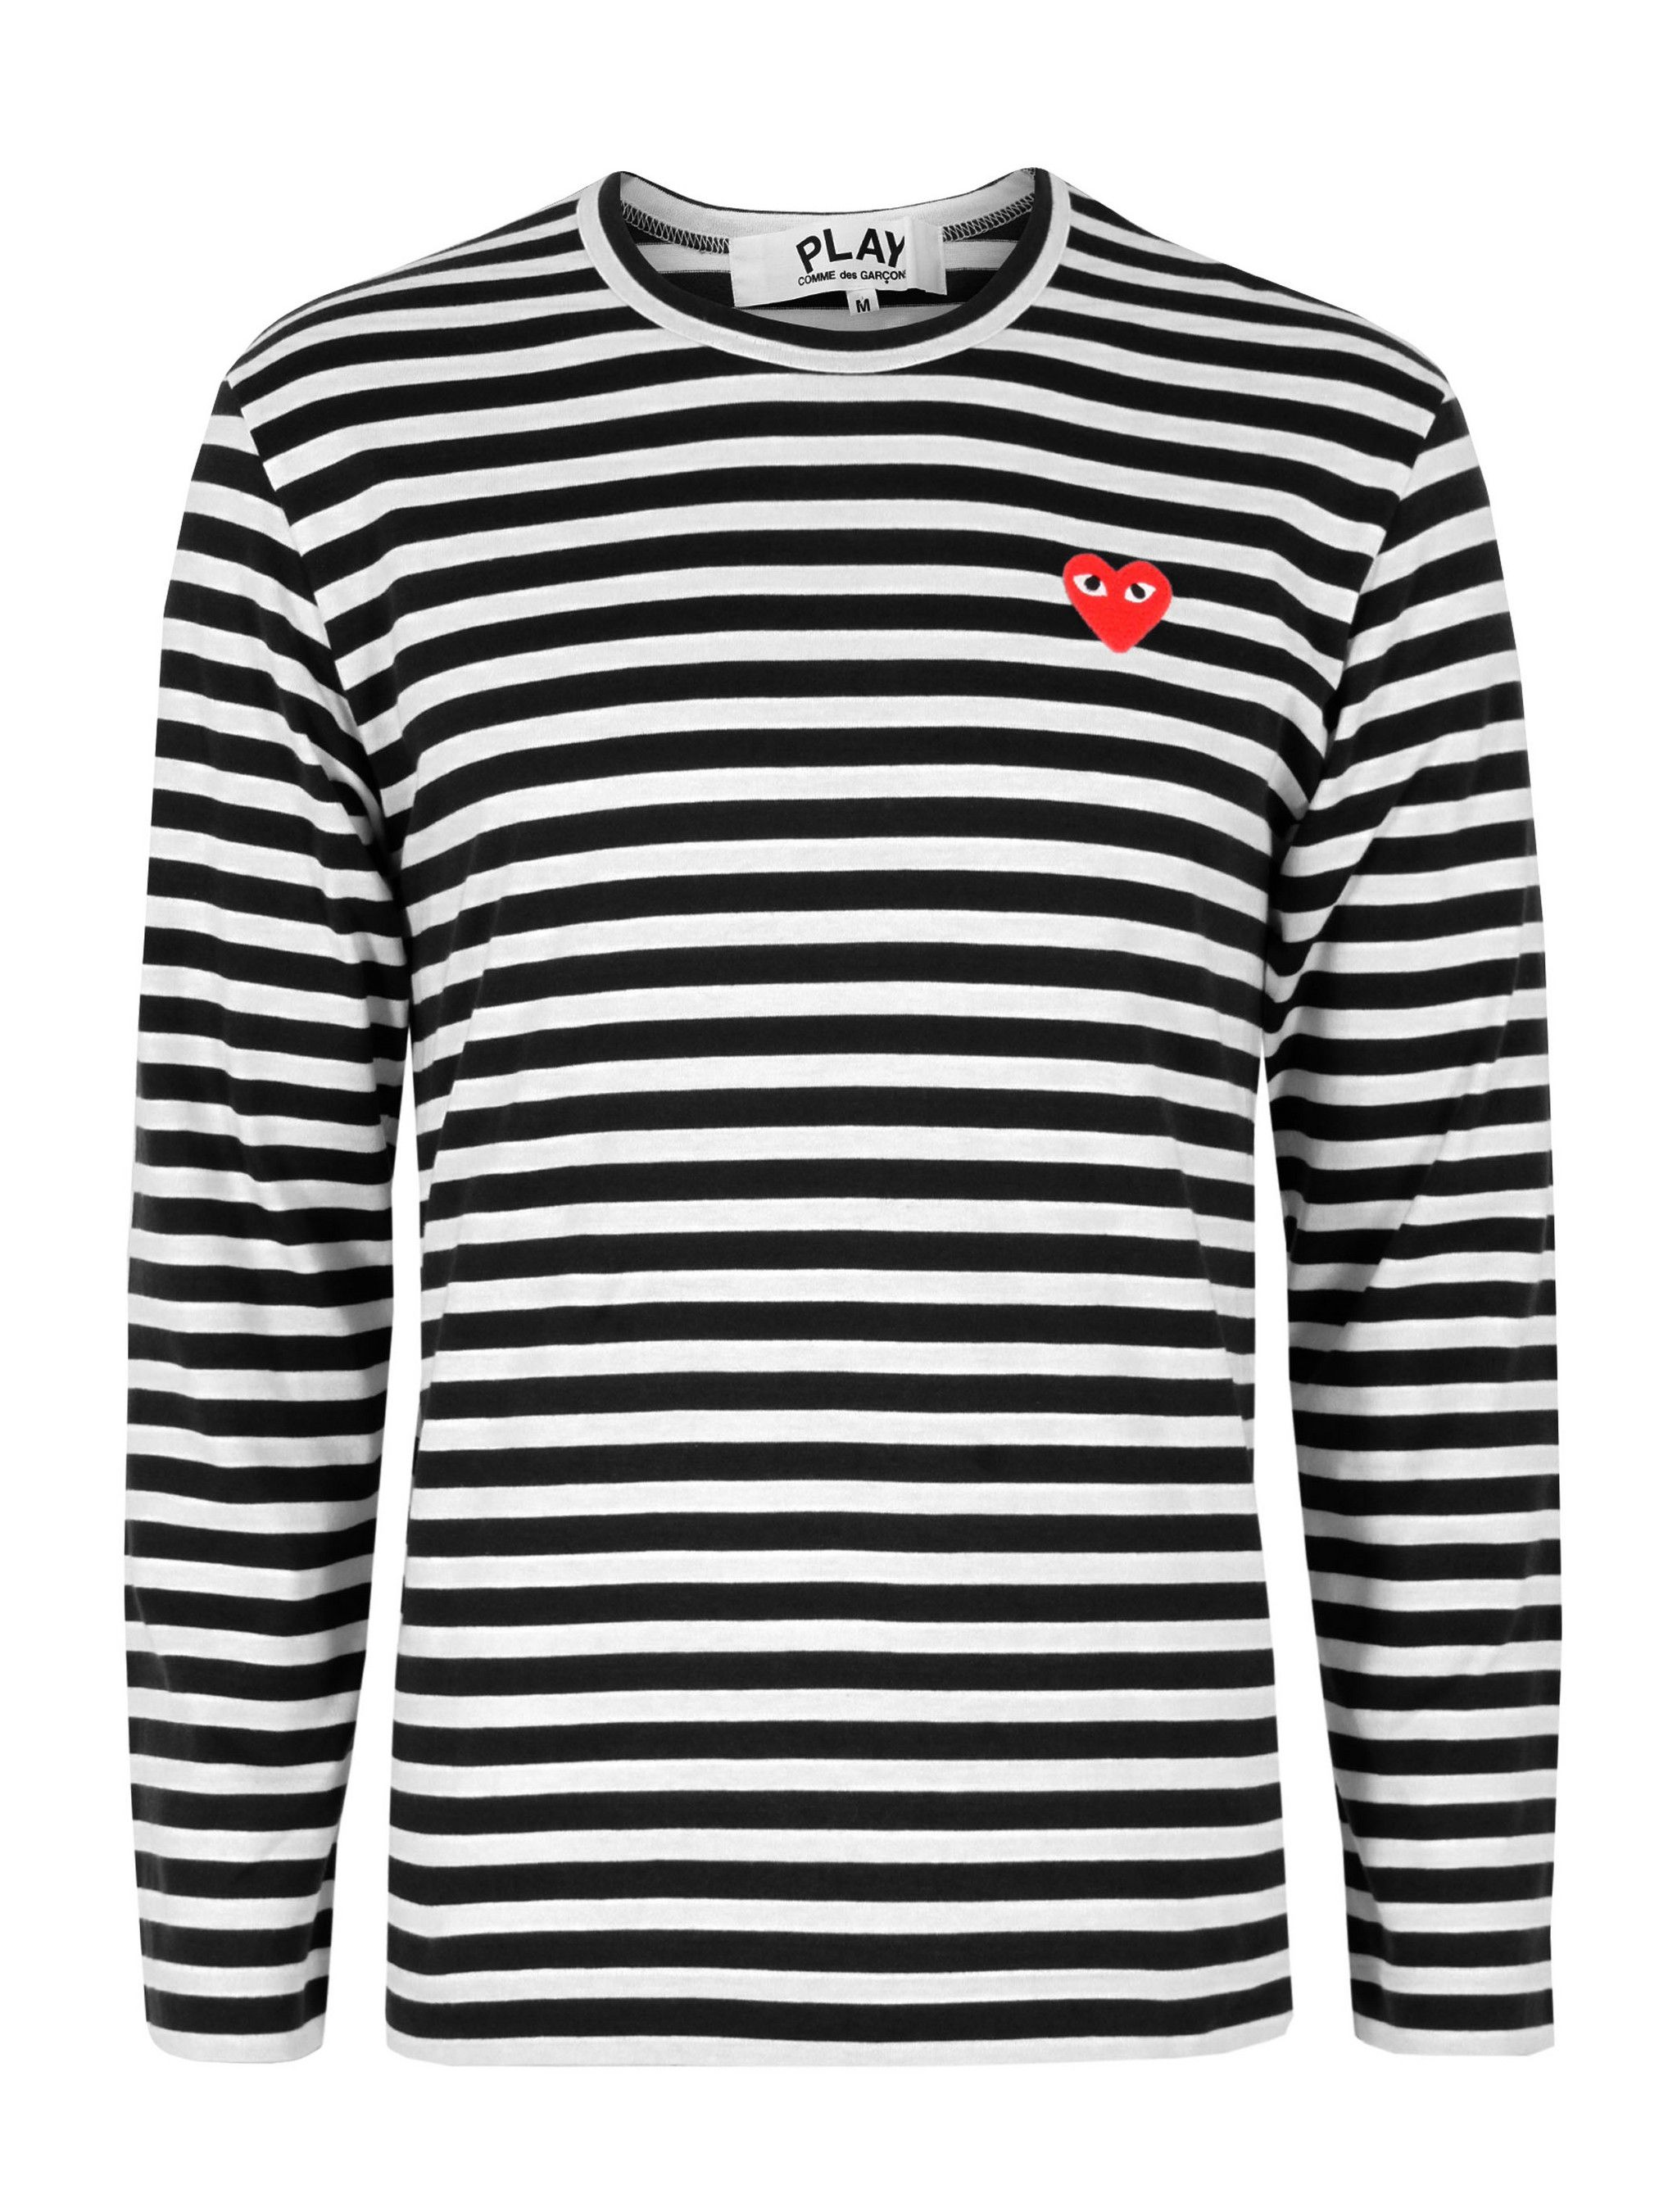 d21733b5bc9b Comme des Garcons Play Black Stripe T-Shirt